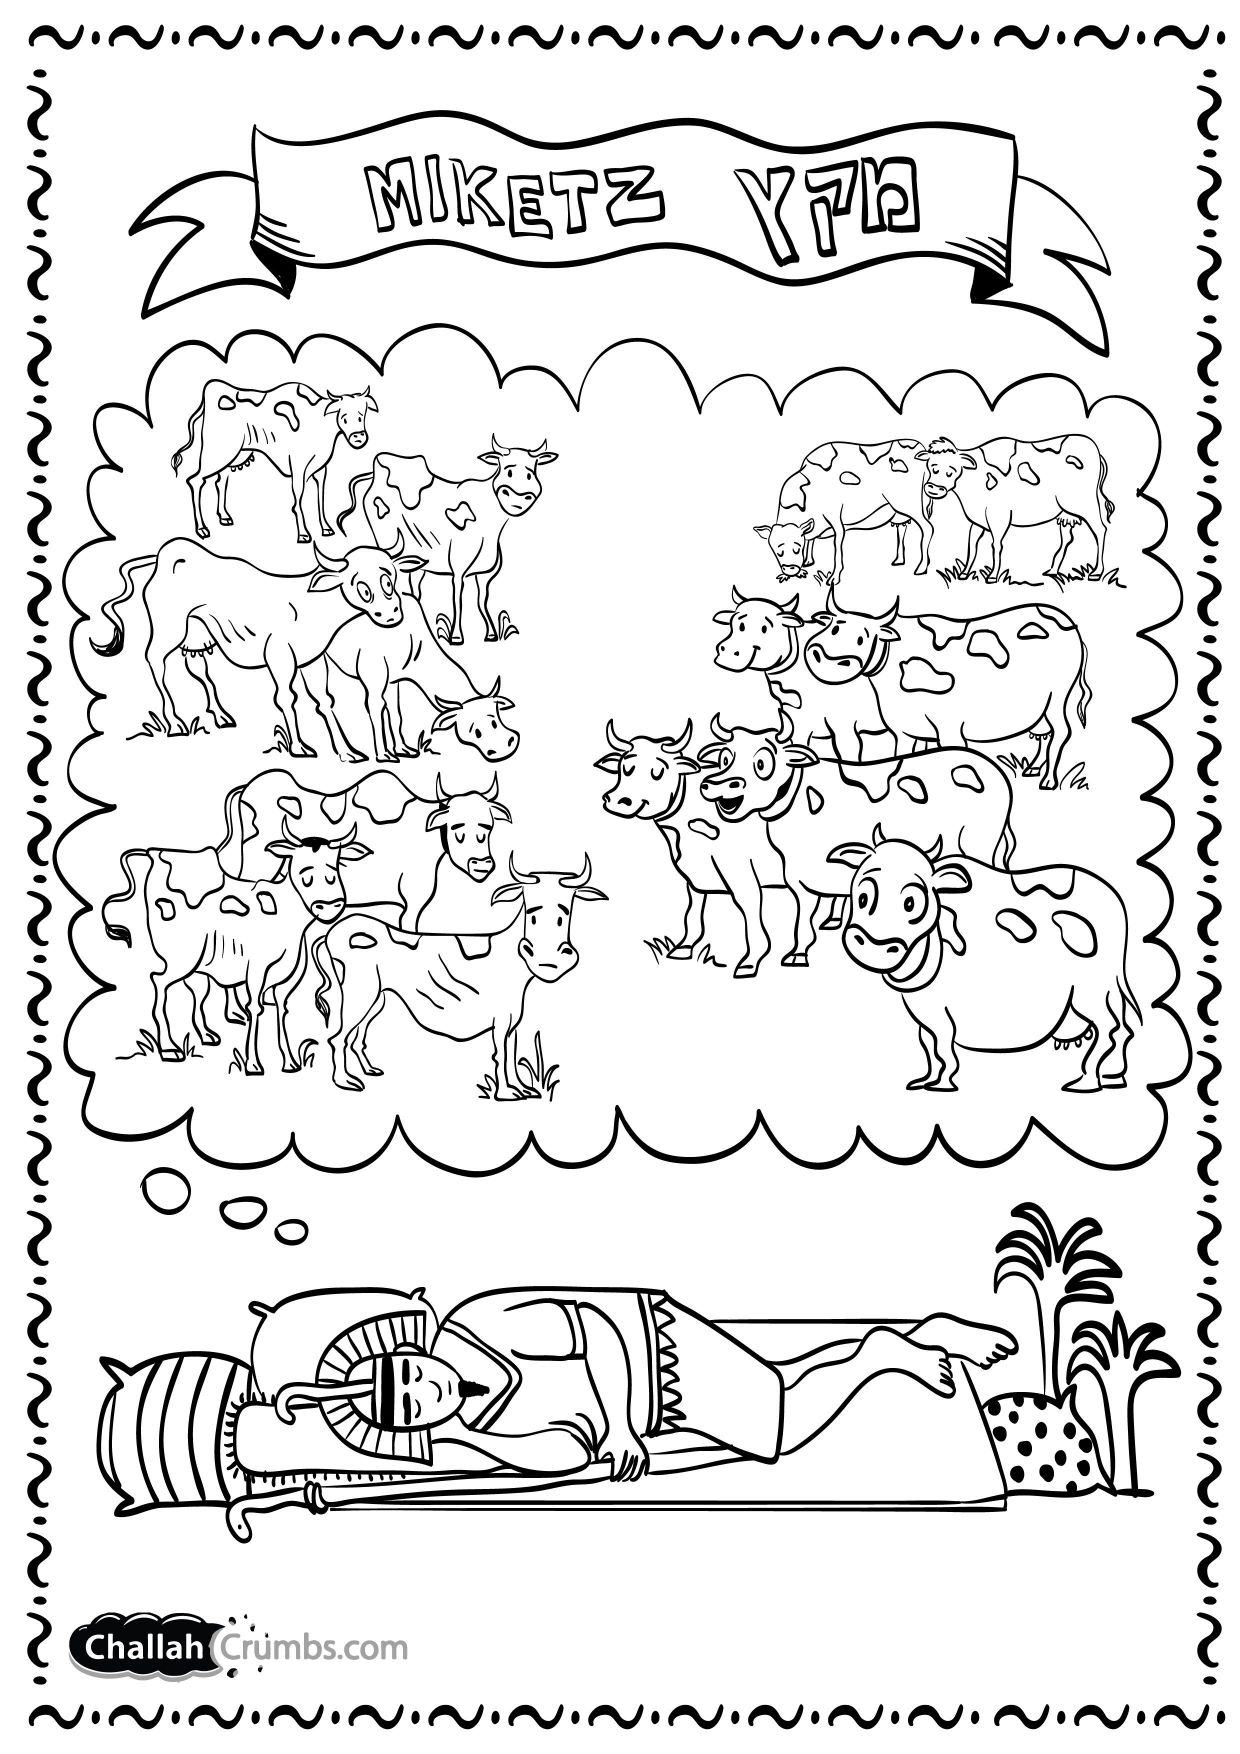 1240x1754 Marvelous Korach Coloring Page Click On Drawing To Print Challah